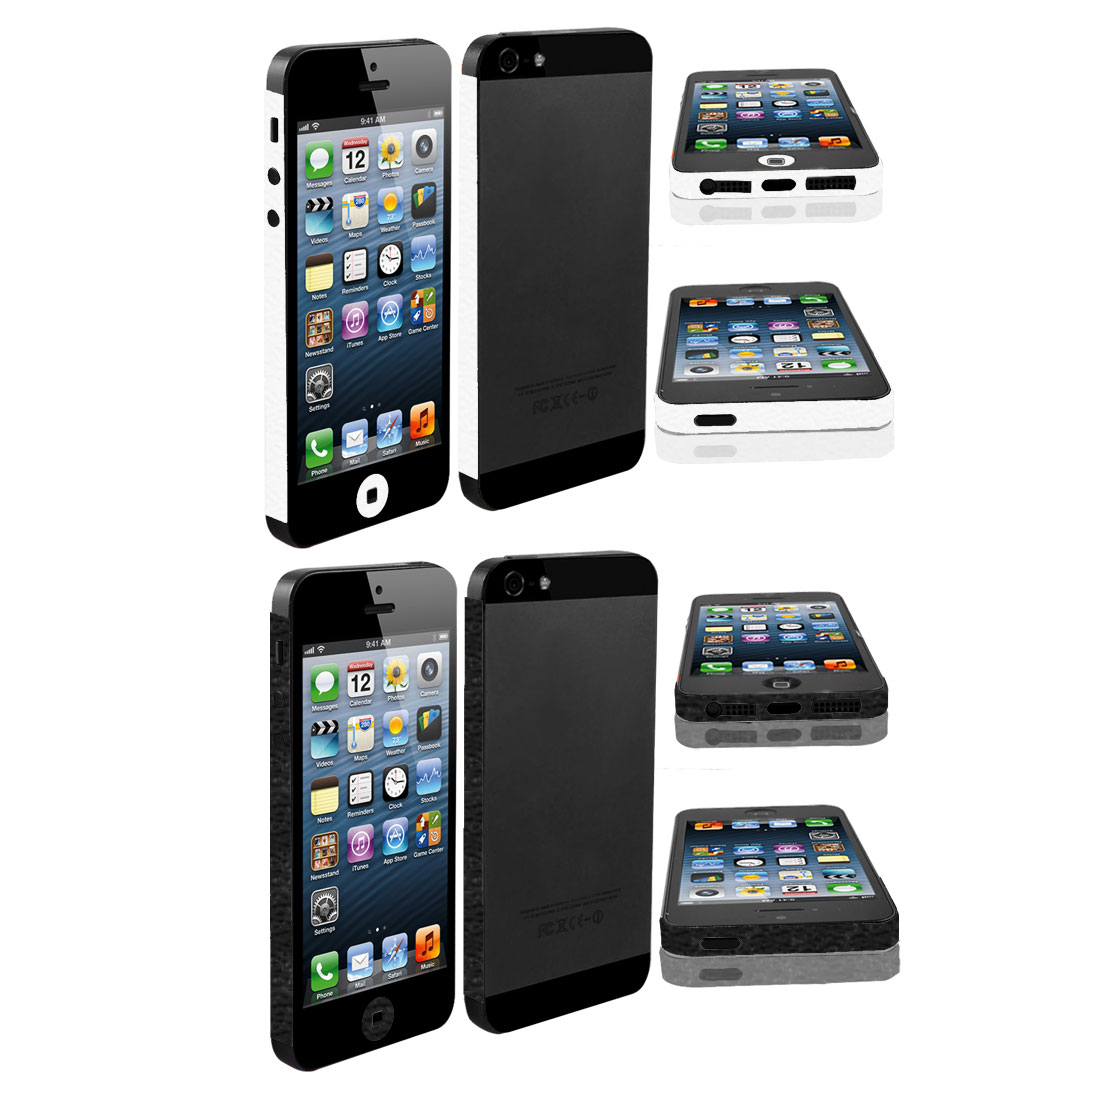 White Black Edge Wrap Sticker Decal Cover Decor 2 Pcs for Apple iPhone 5 5G